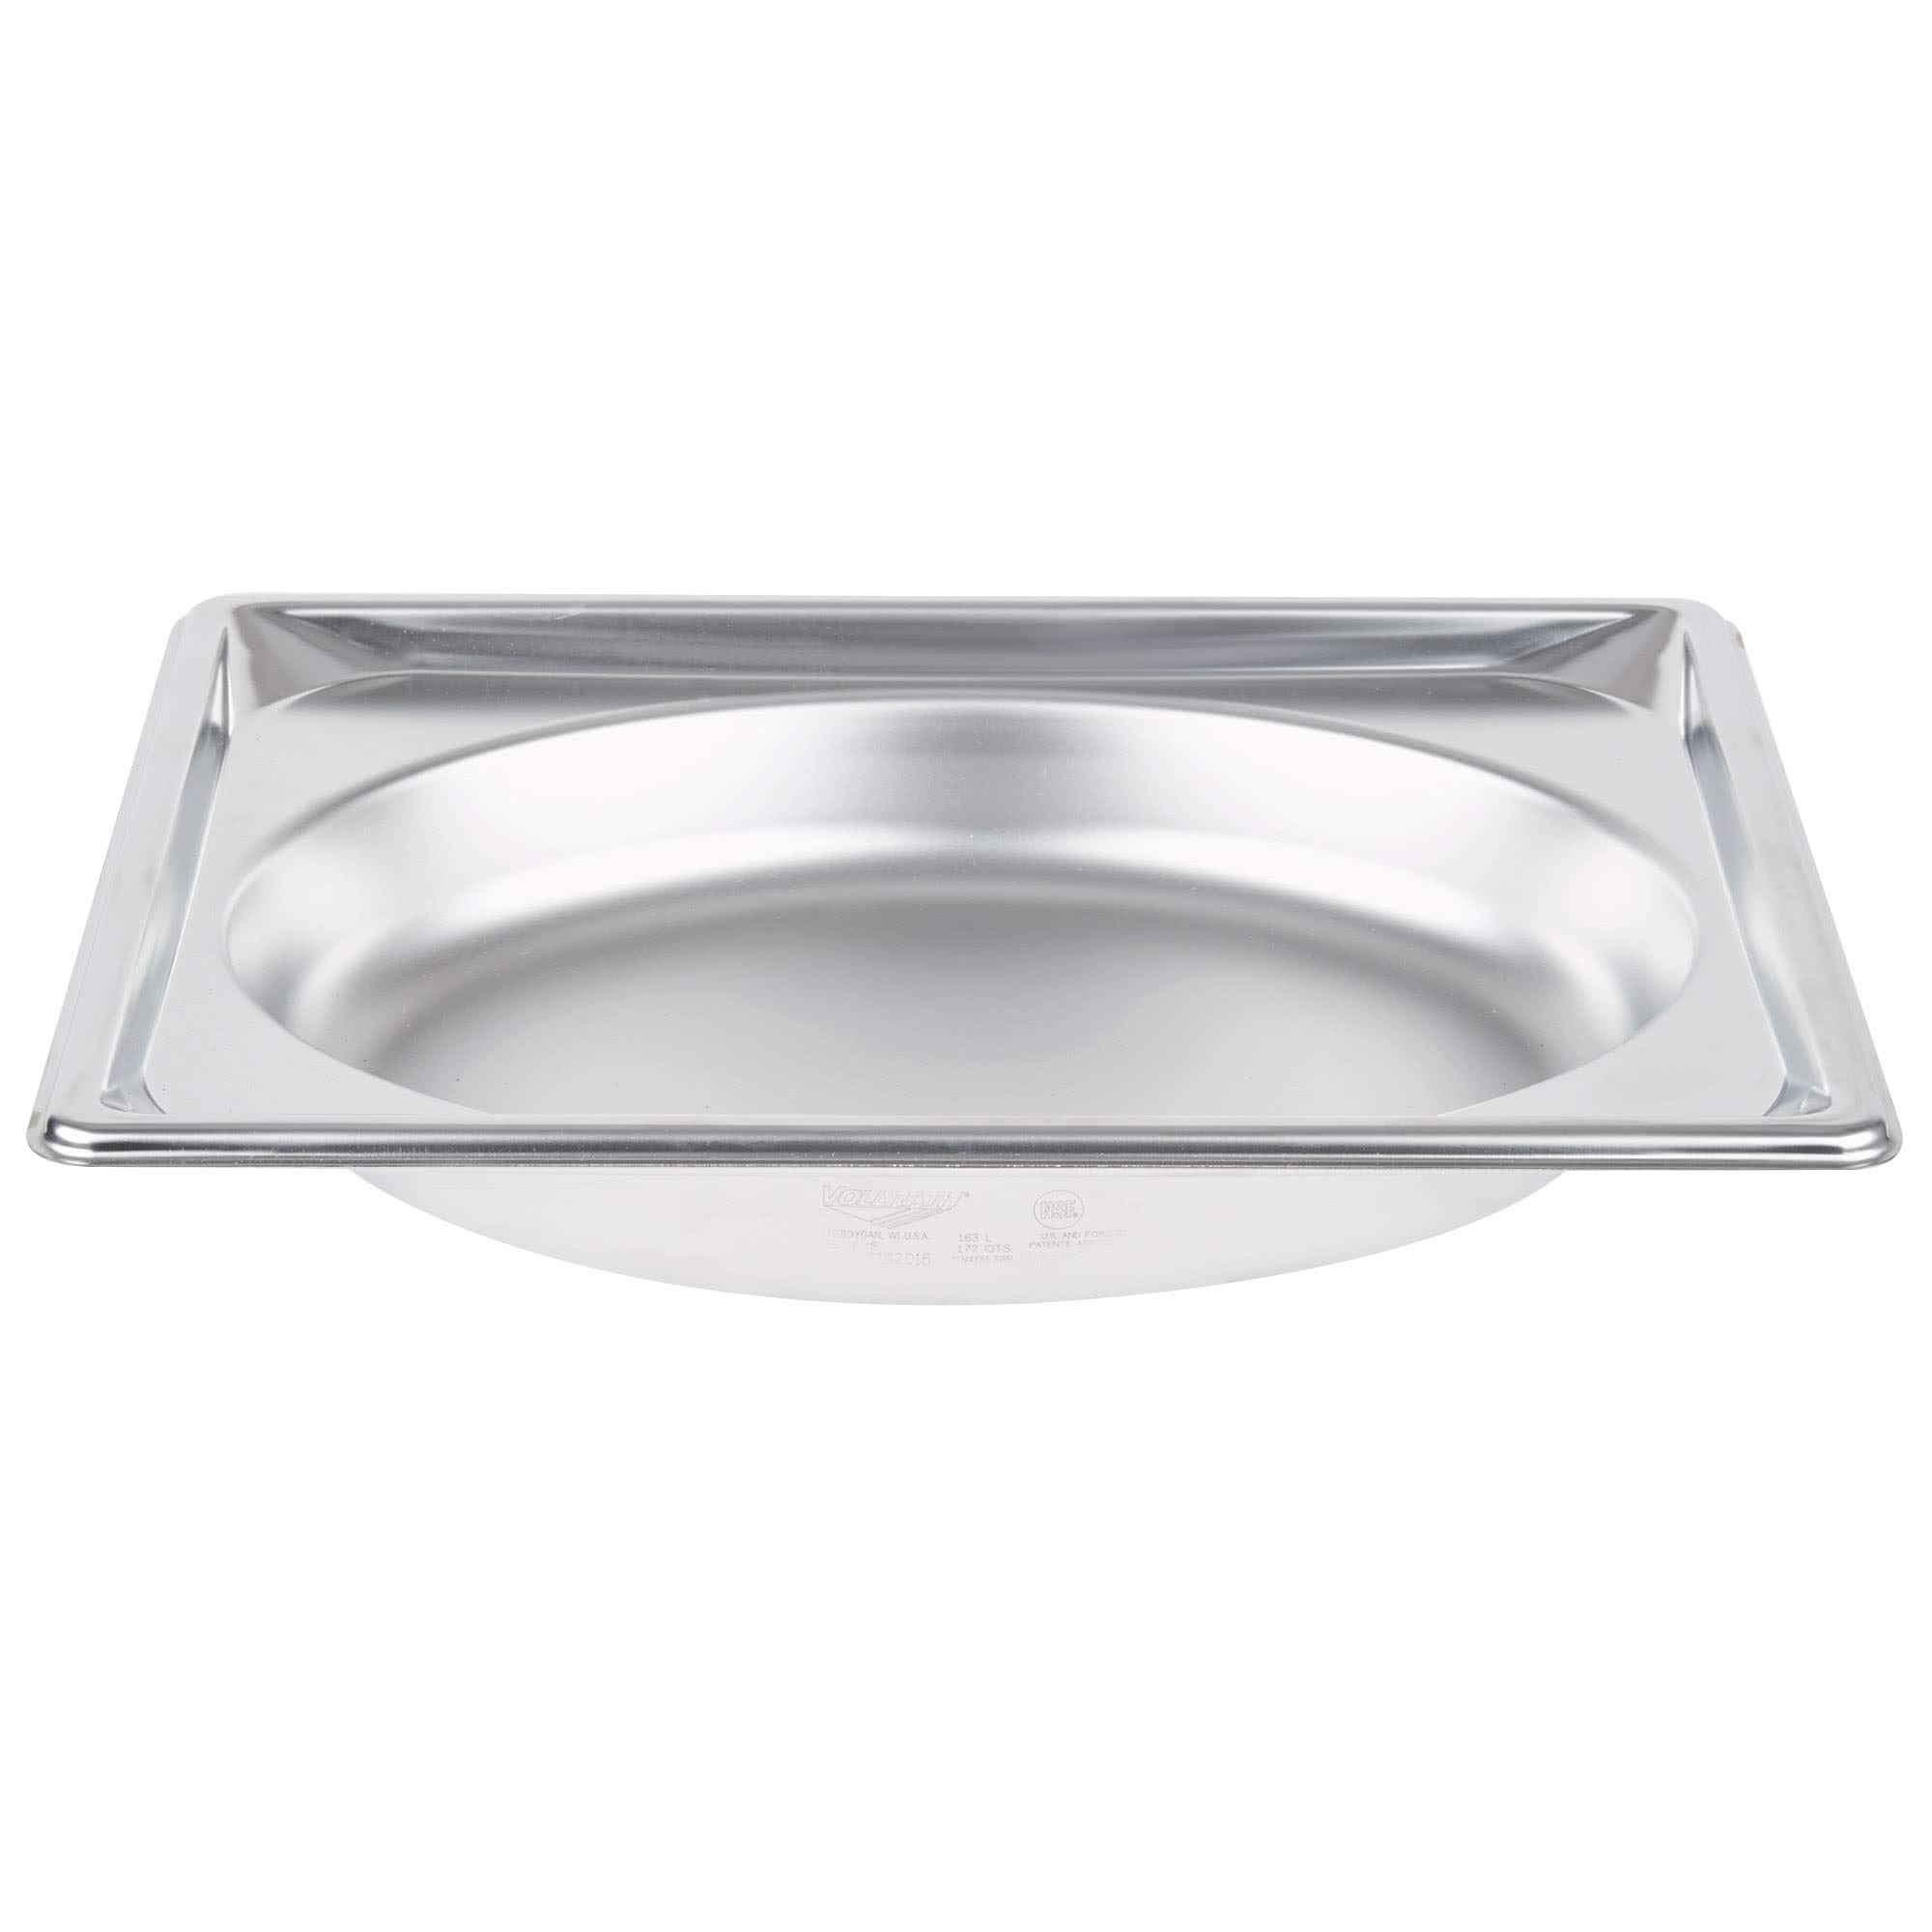 TableTop King 3102015 Super Pan Shape 1/2 Size 2'' Deep Oval Pan by TableTop King